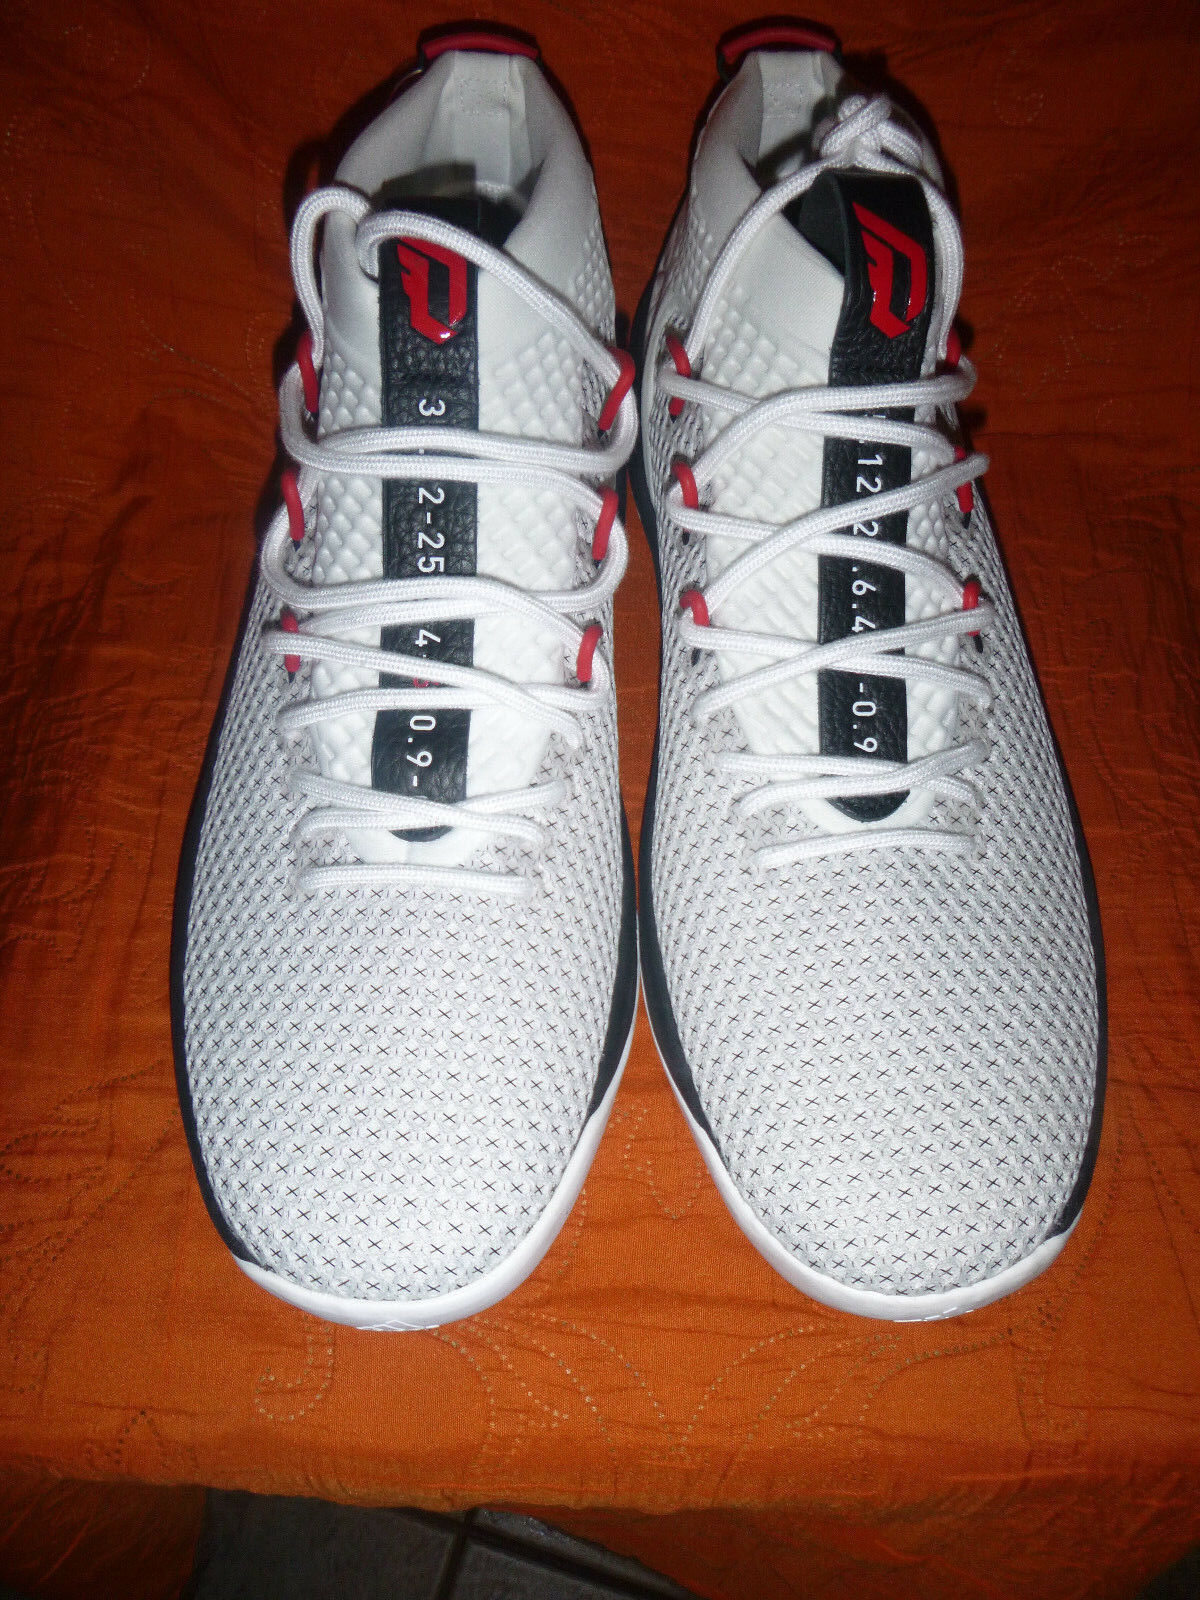 a0f9415b4a0 Adidas DAMINA LILLARD BY3759 DAME 4 BASKETBALL SIZE 16 NWOB & WOT SNEAKER  NEW nqlmue4166-Athletic Shoes